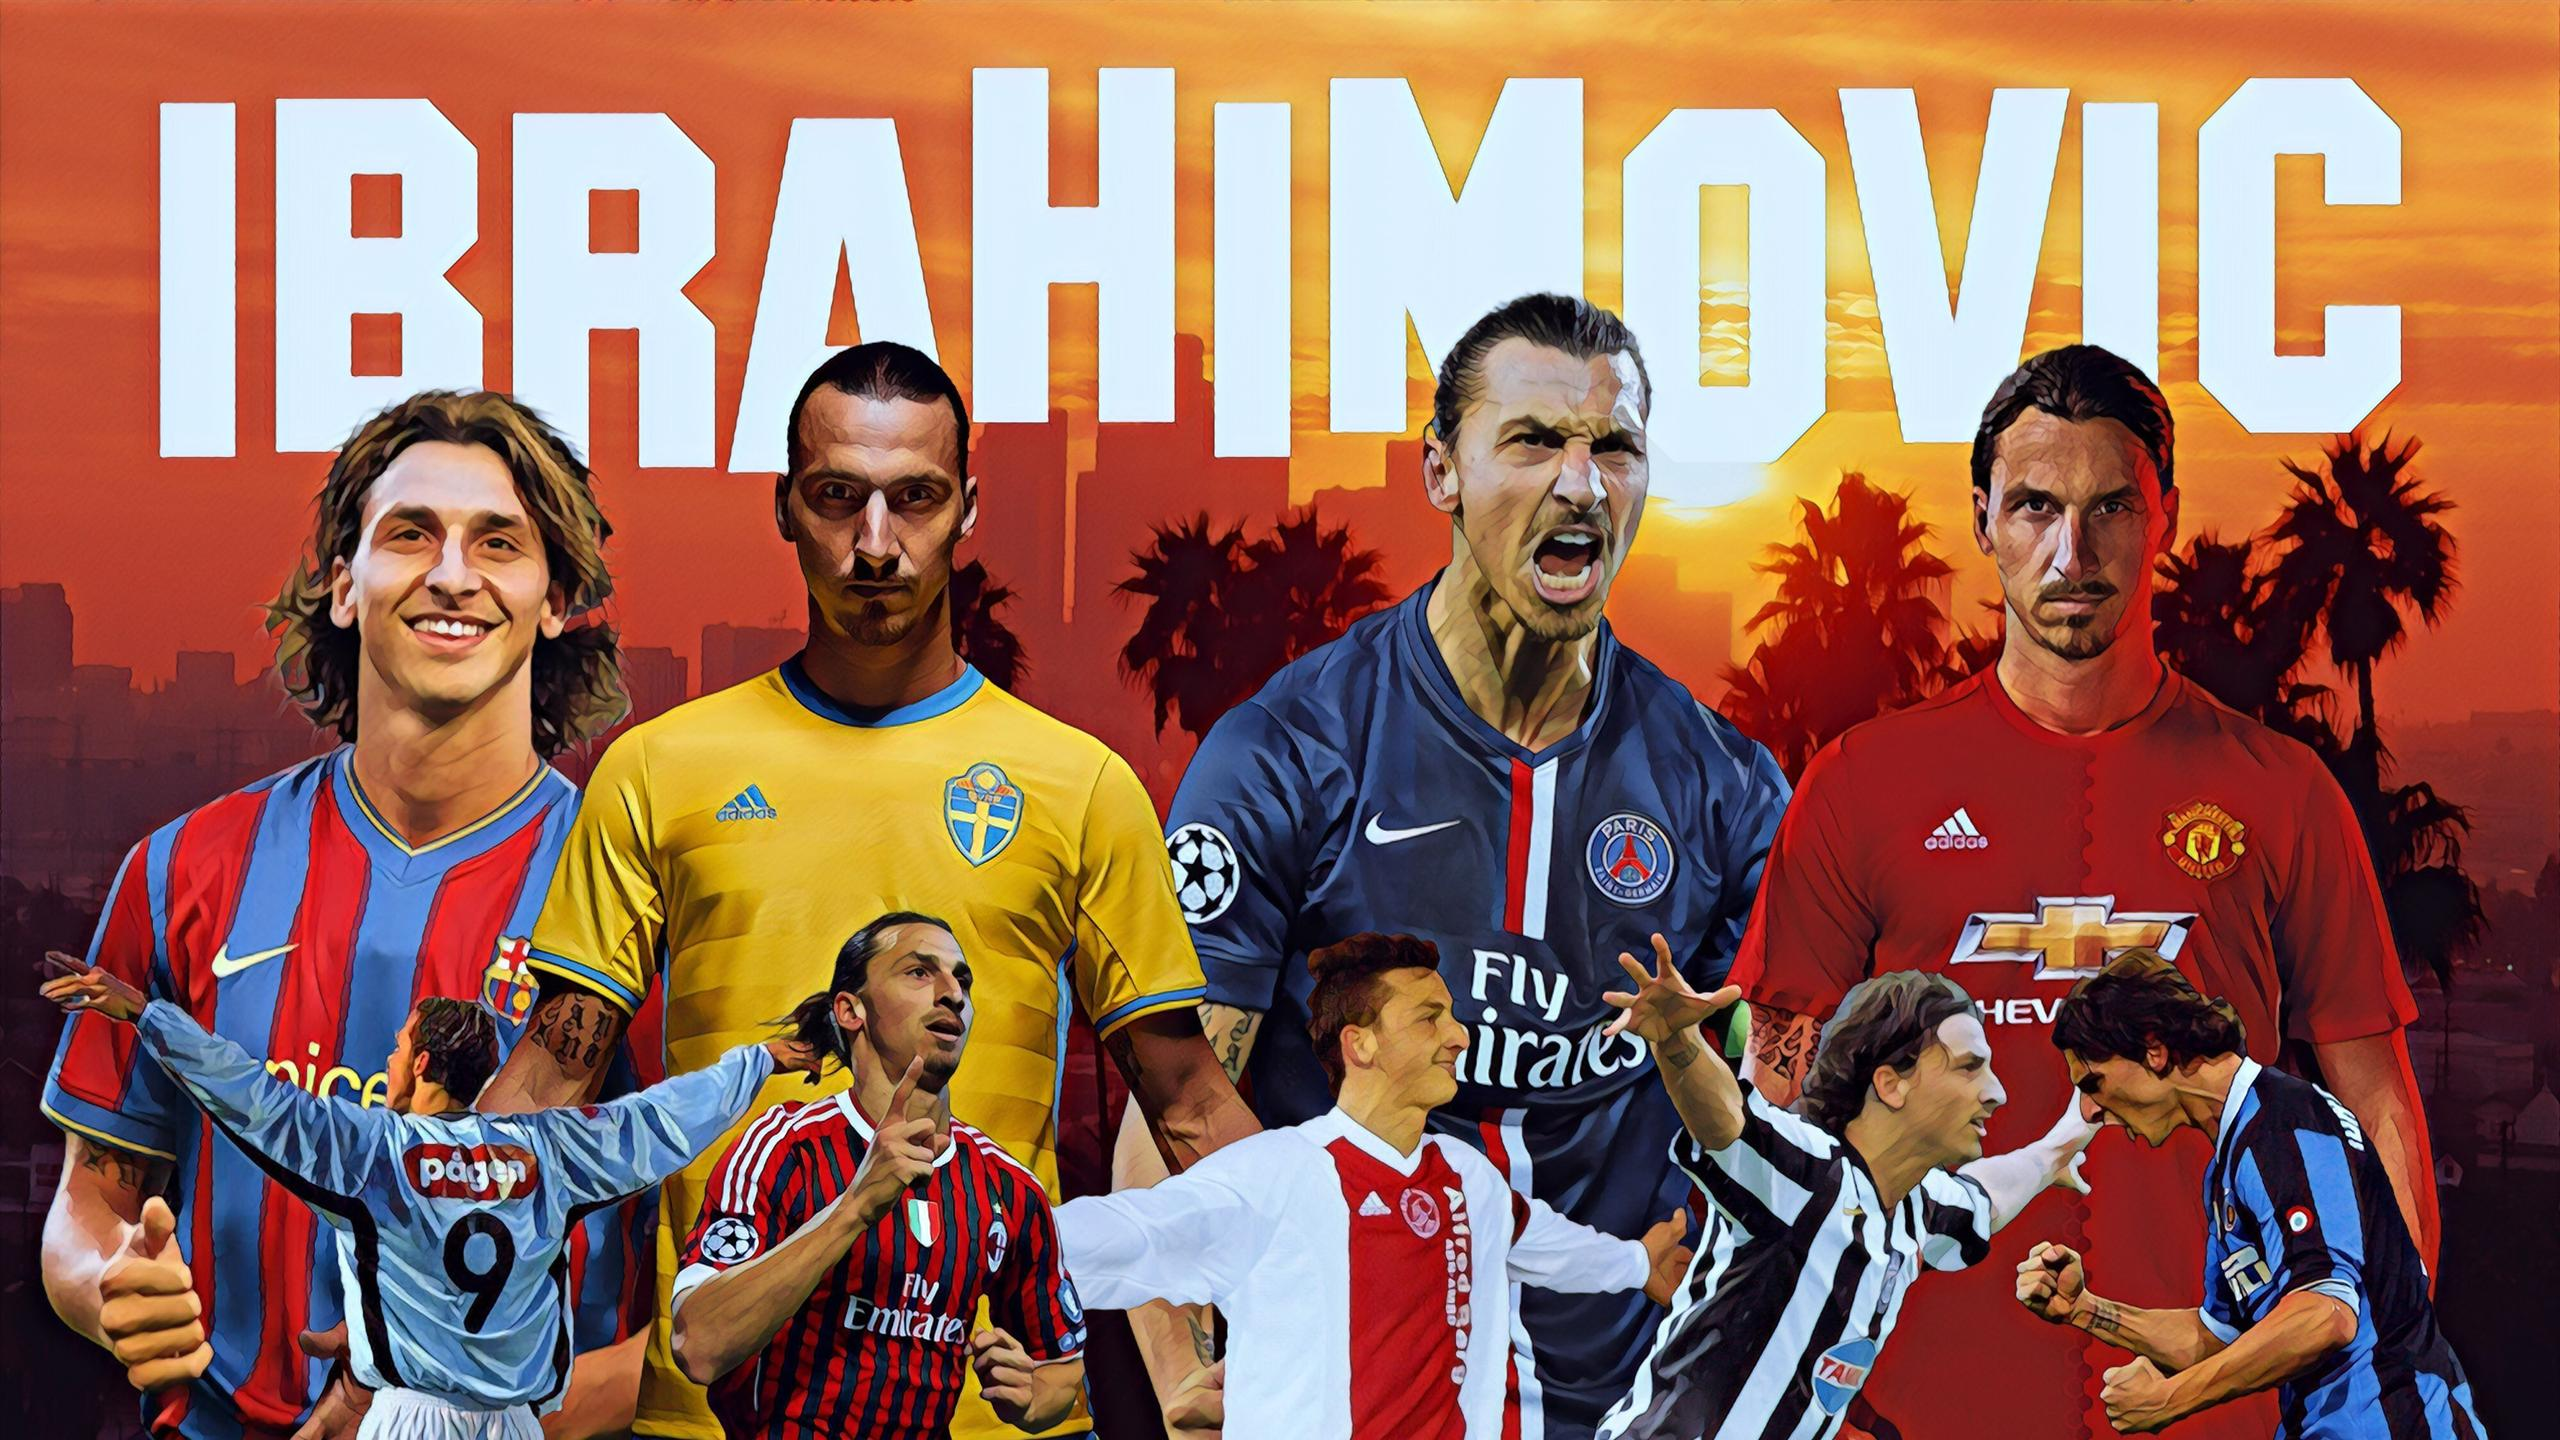 How Zlatan Ibrahimovic stole the show at the Europa League